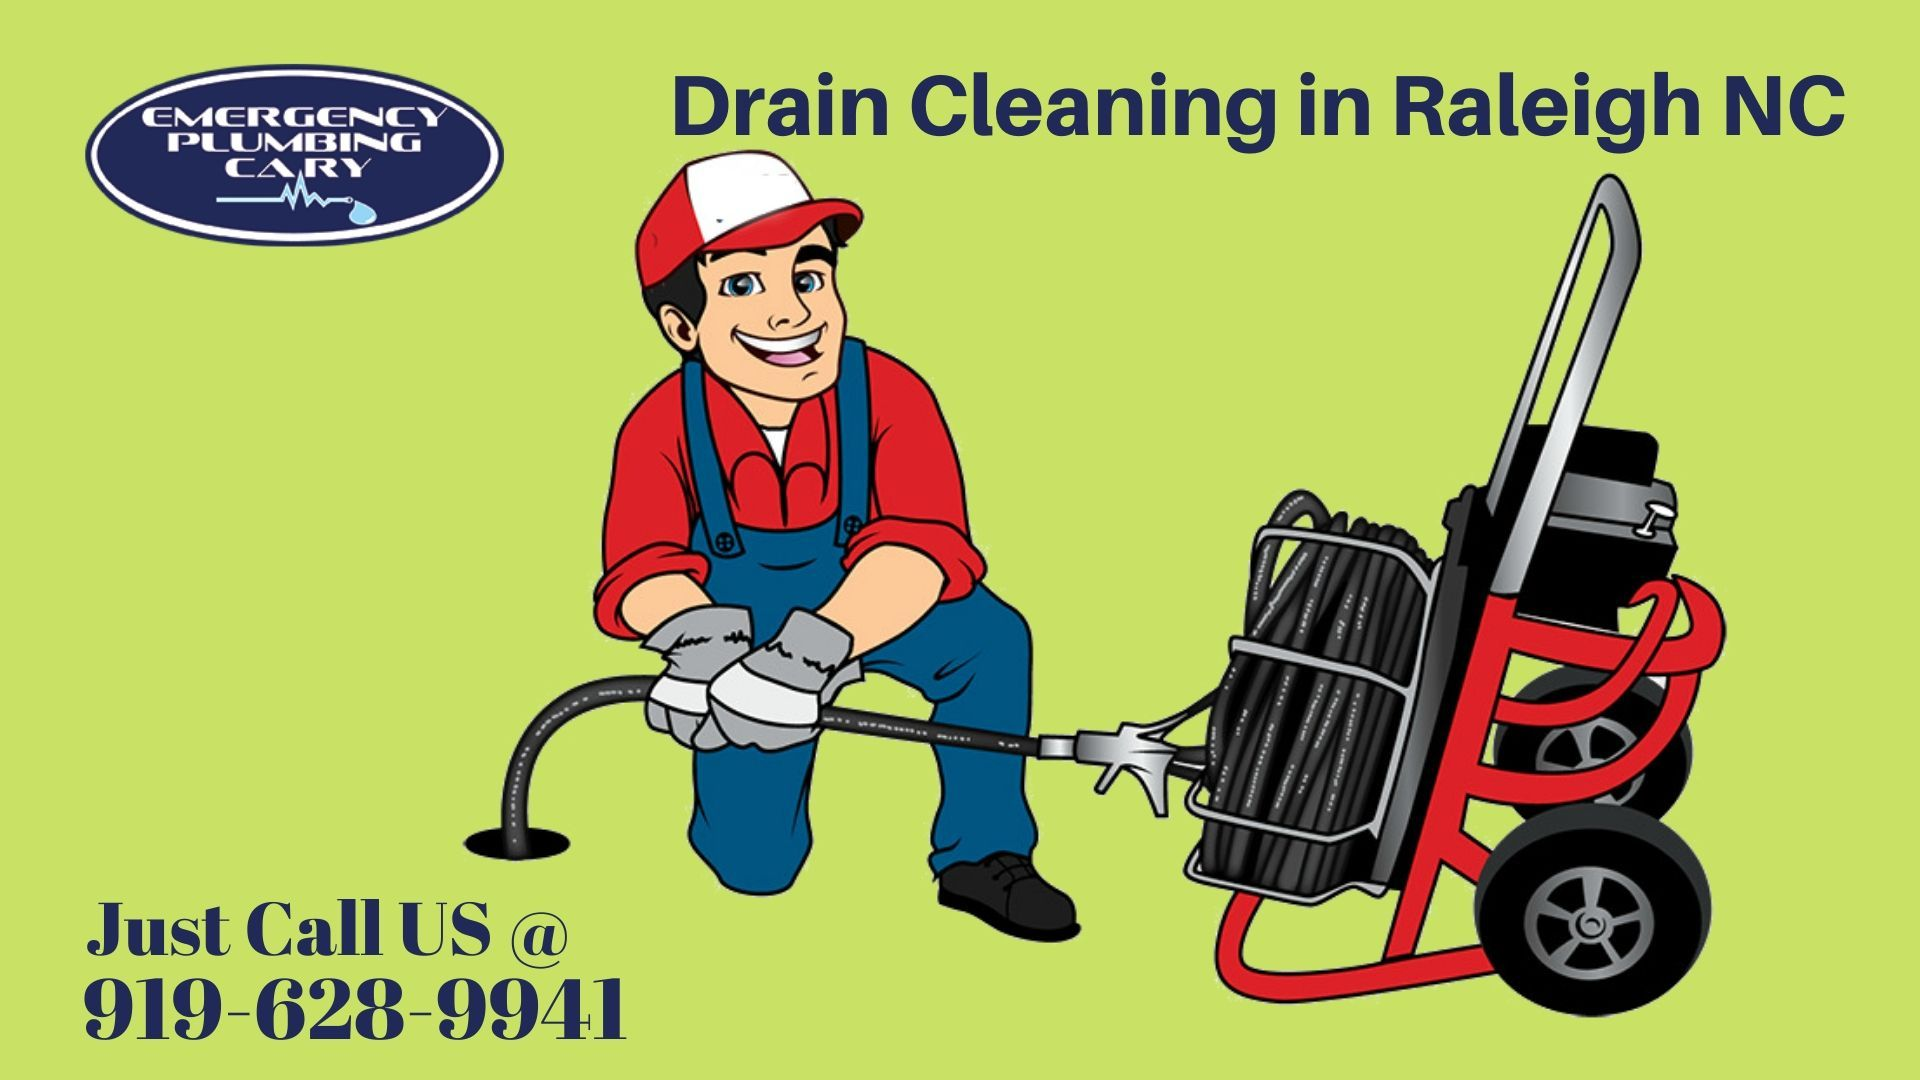 Are you looking for Drain Cleaning Service in Raleigh NC